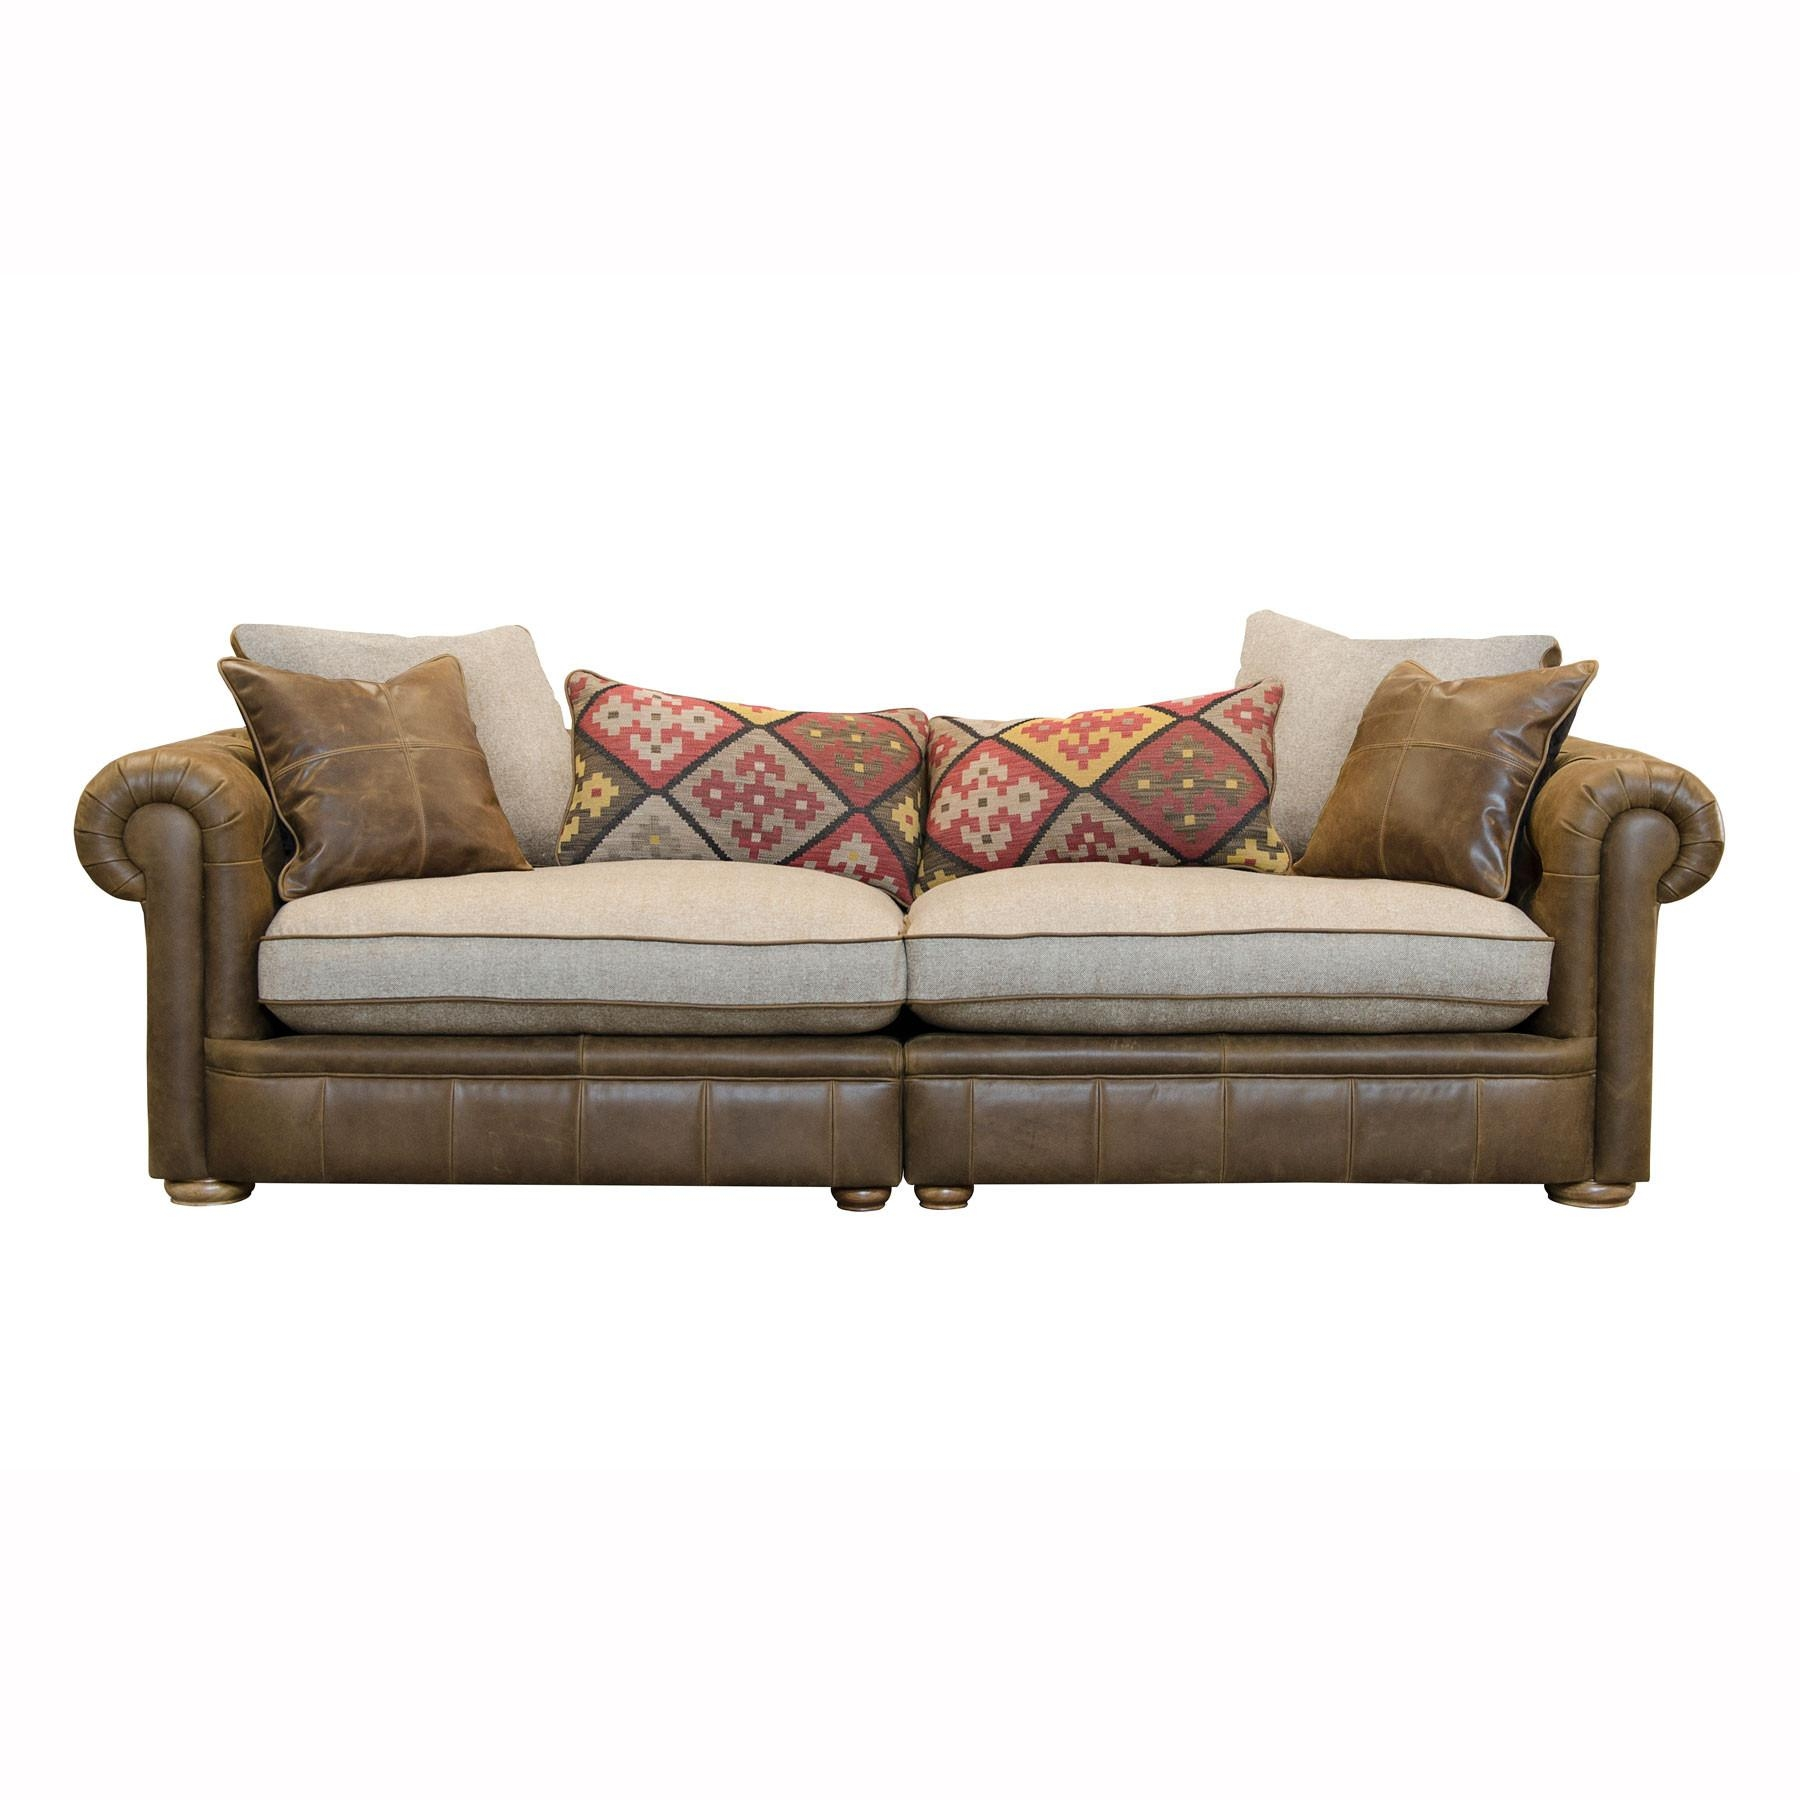 Sofas Center : Leather And Fabric Sofa Sofaslove Seats 86 Within Leather And Cloth Sofa (Image 17 of 20)